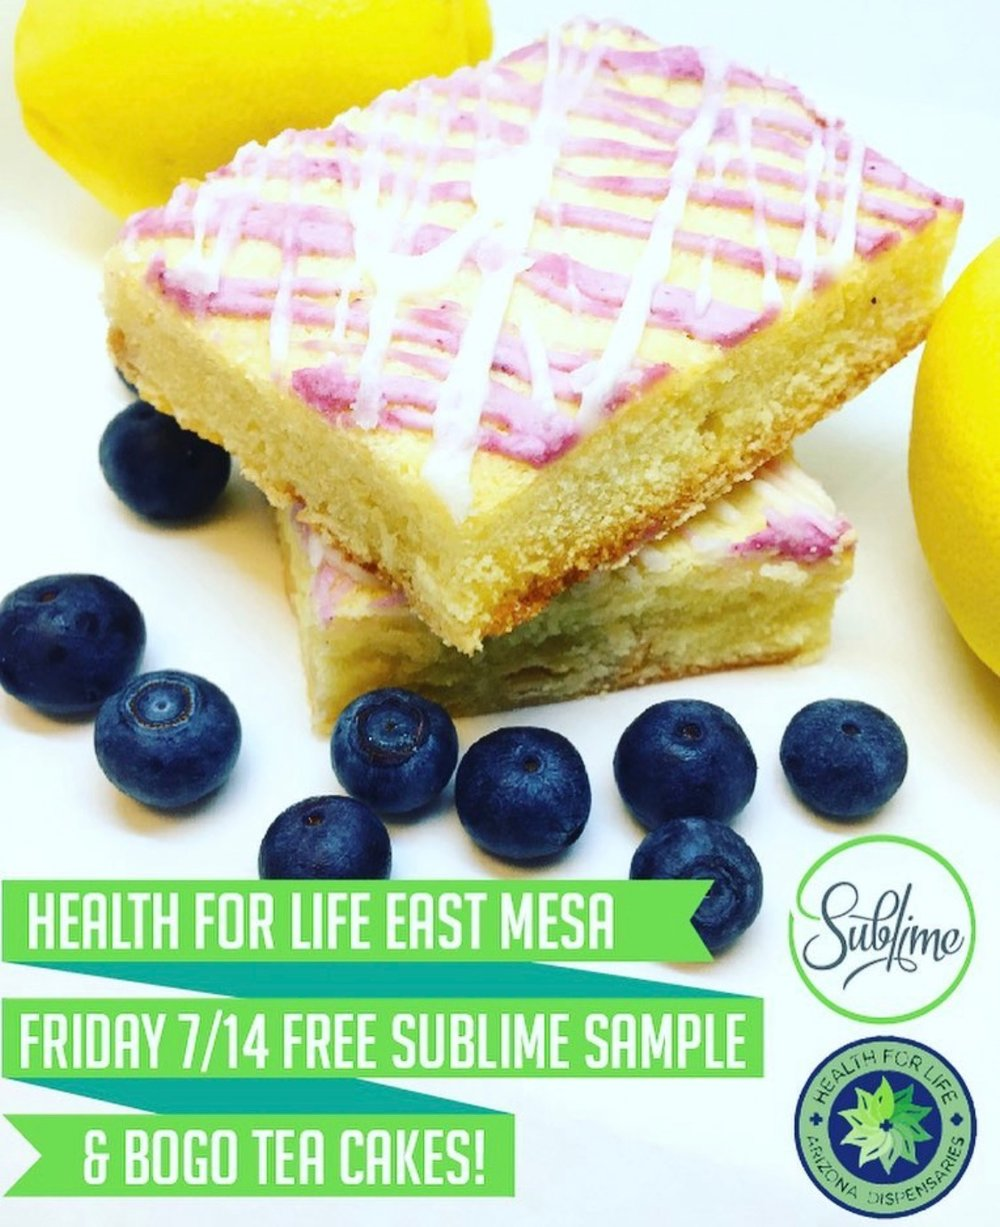 Sublime @ H4L East - Come meet the makers of your favorite edibles on July 14th!!